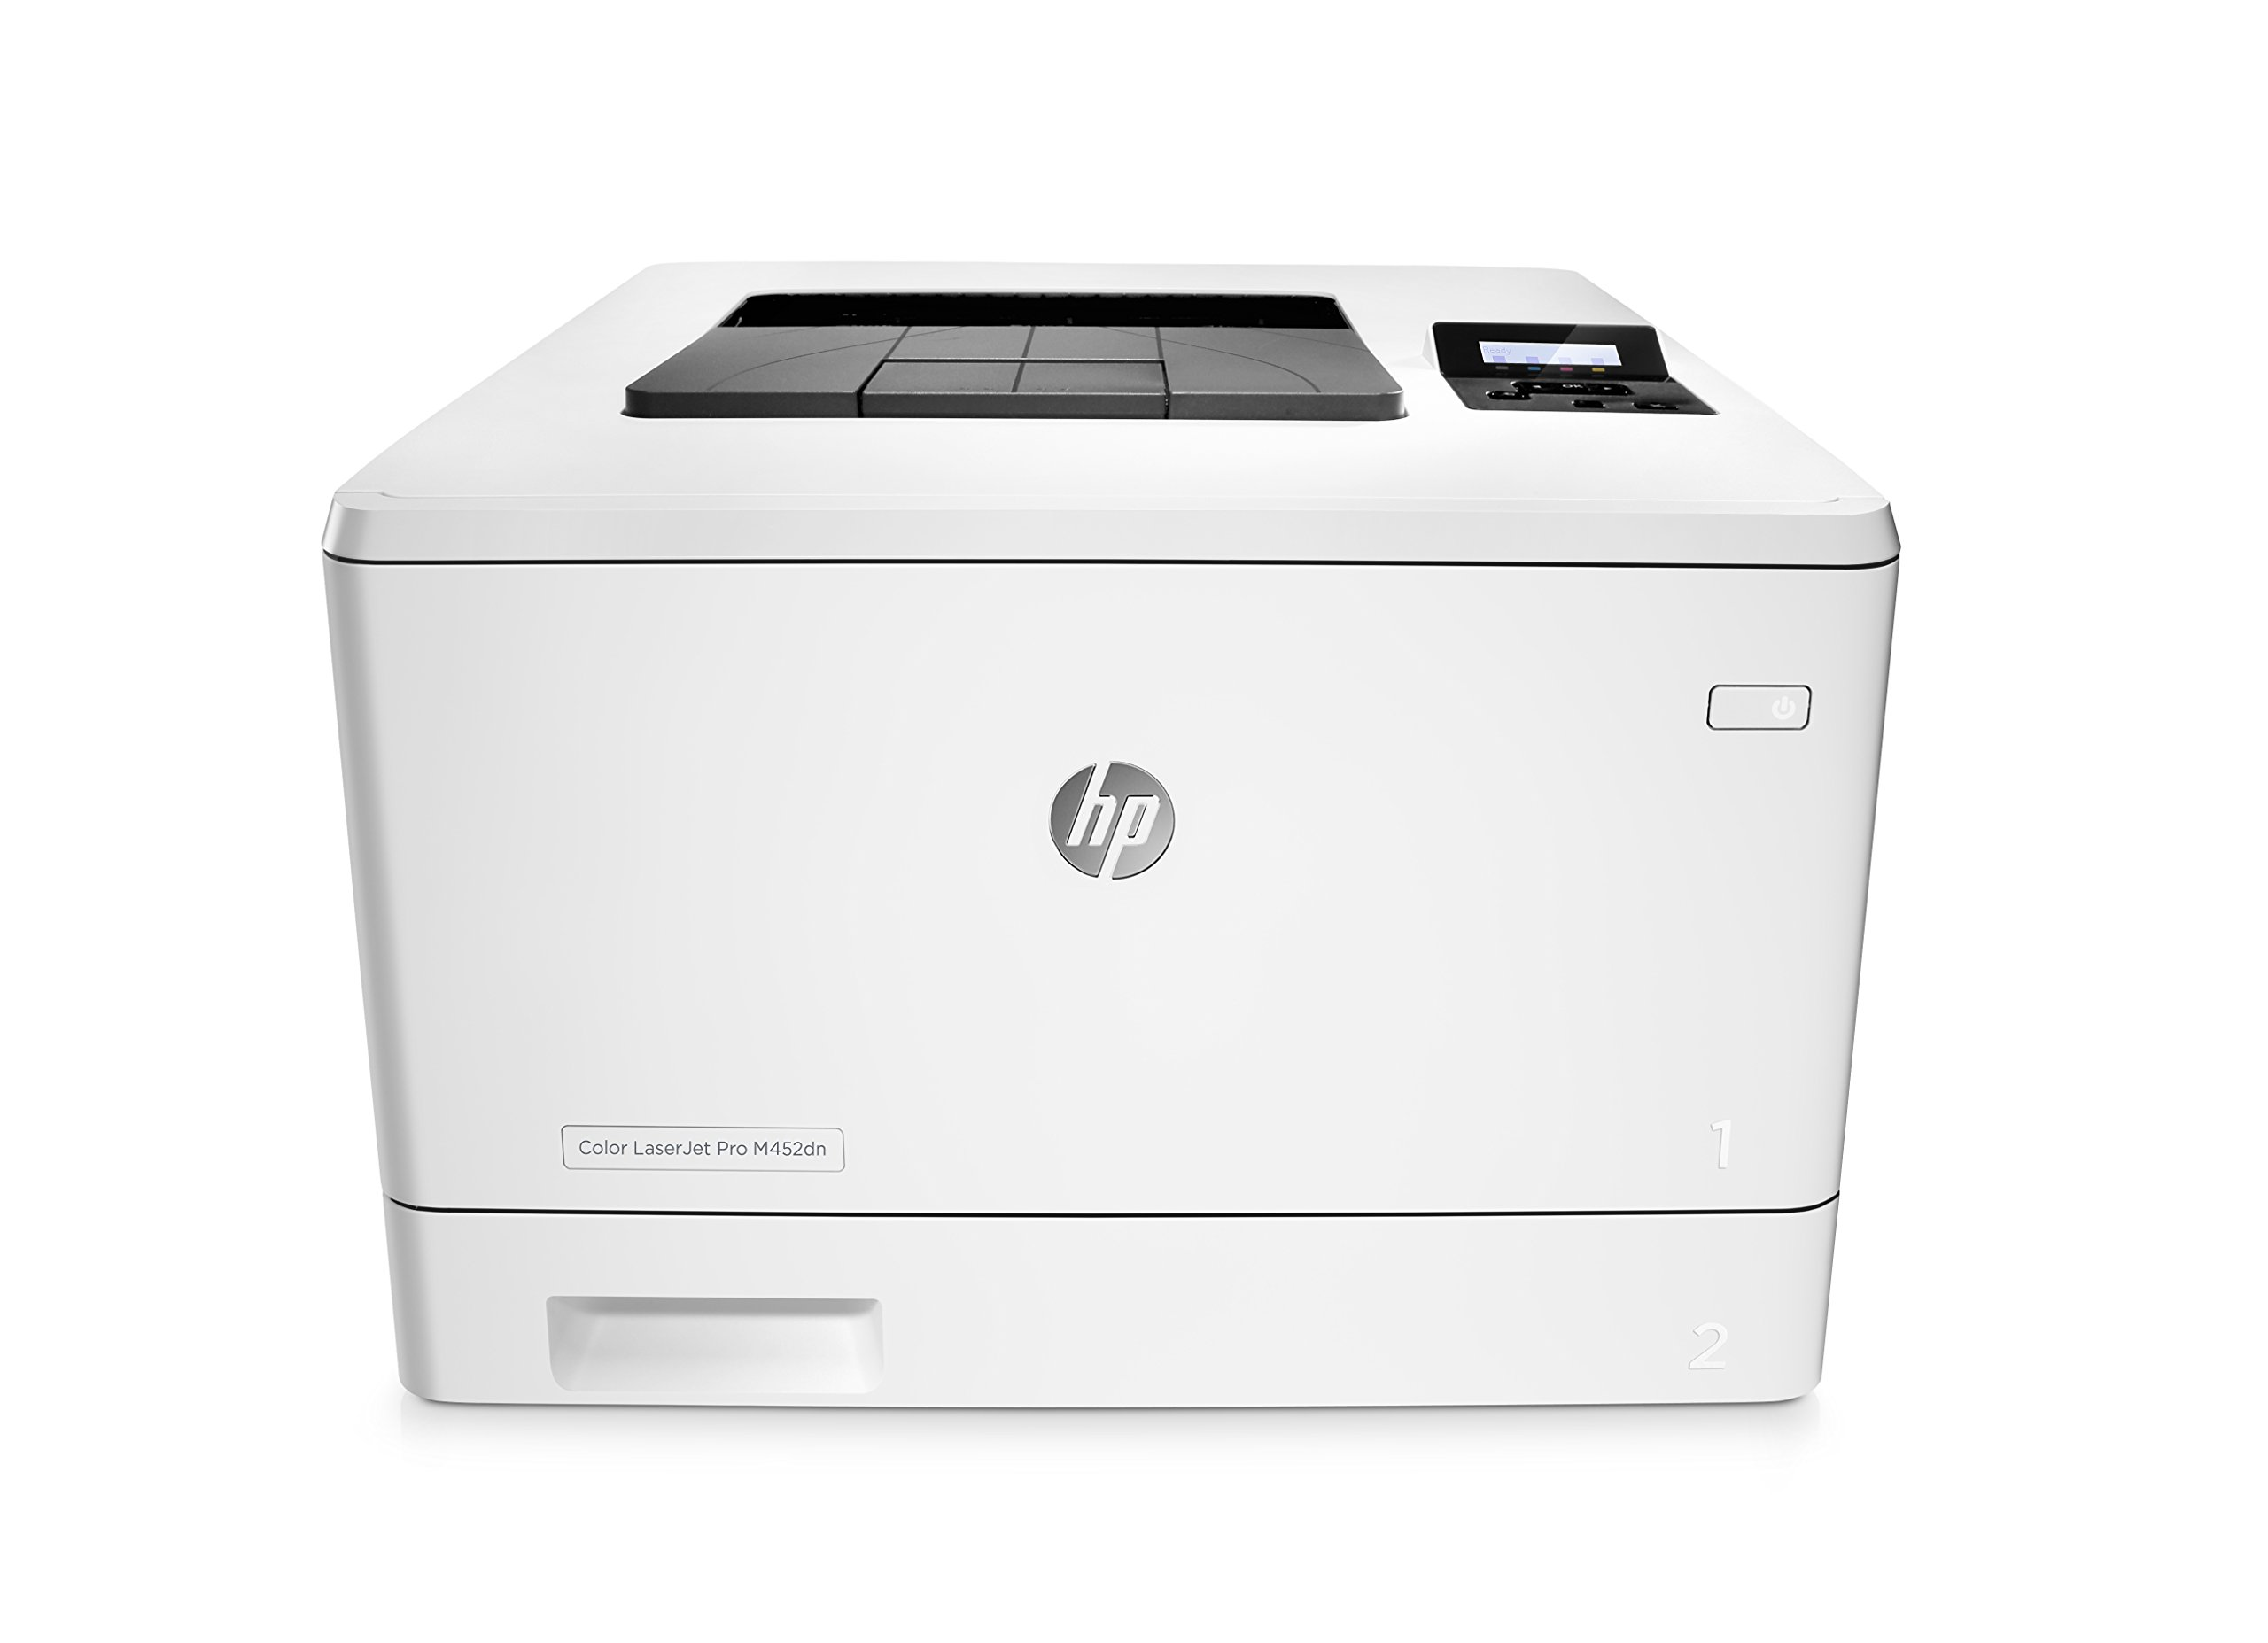 HP LaserJet Pro M452dn Color Laser Printer with Built-in Ethernet & Double-Sided Printing, Amazon Dash Replenishment ready (CF389A) by HP (Image #1)